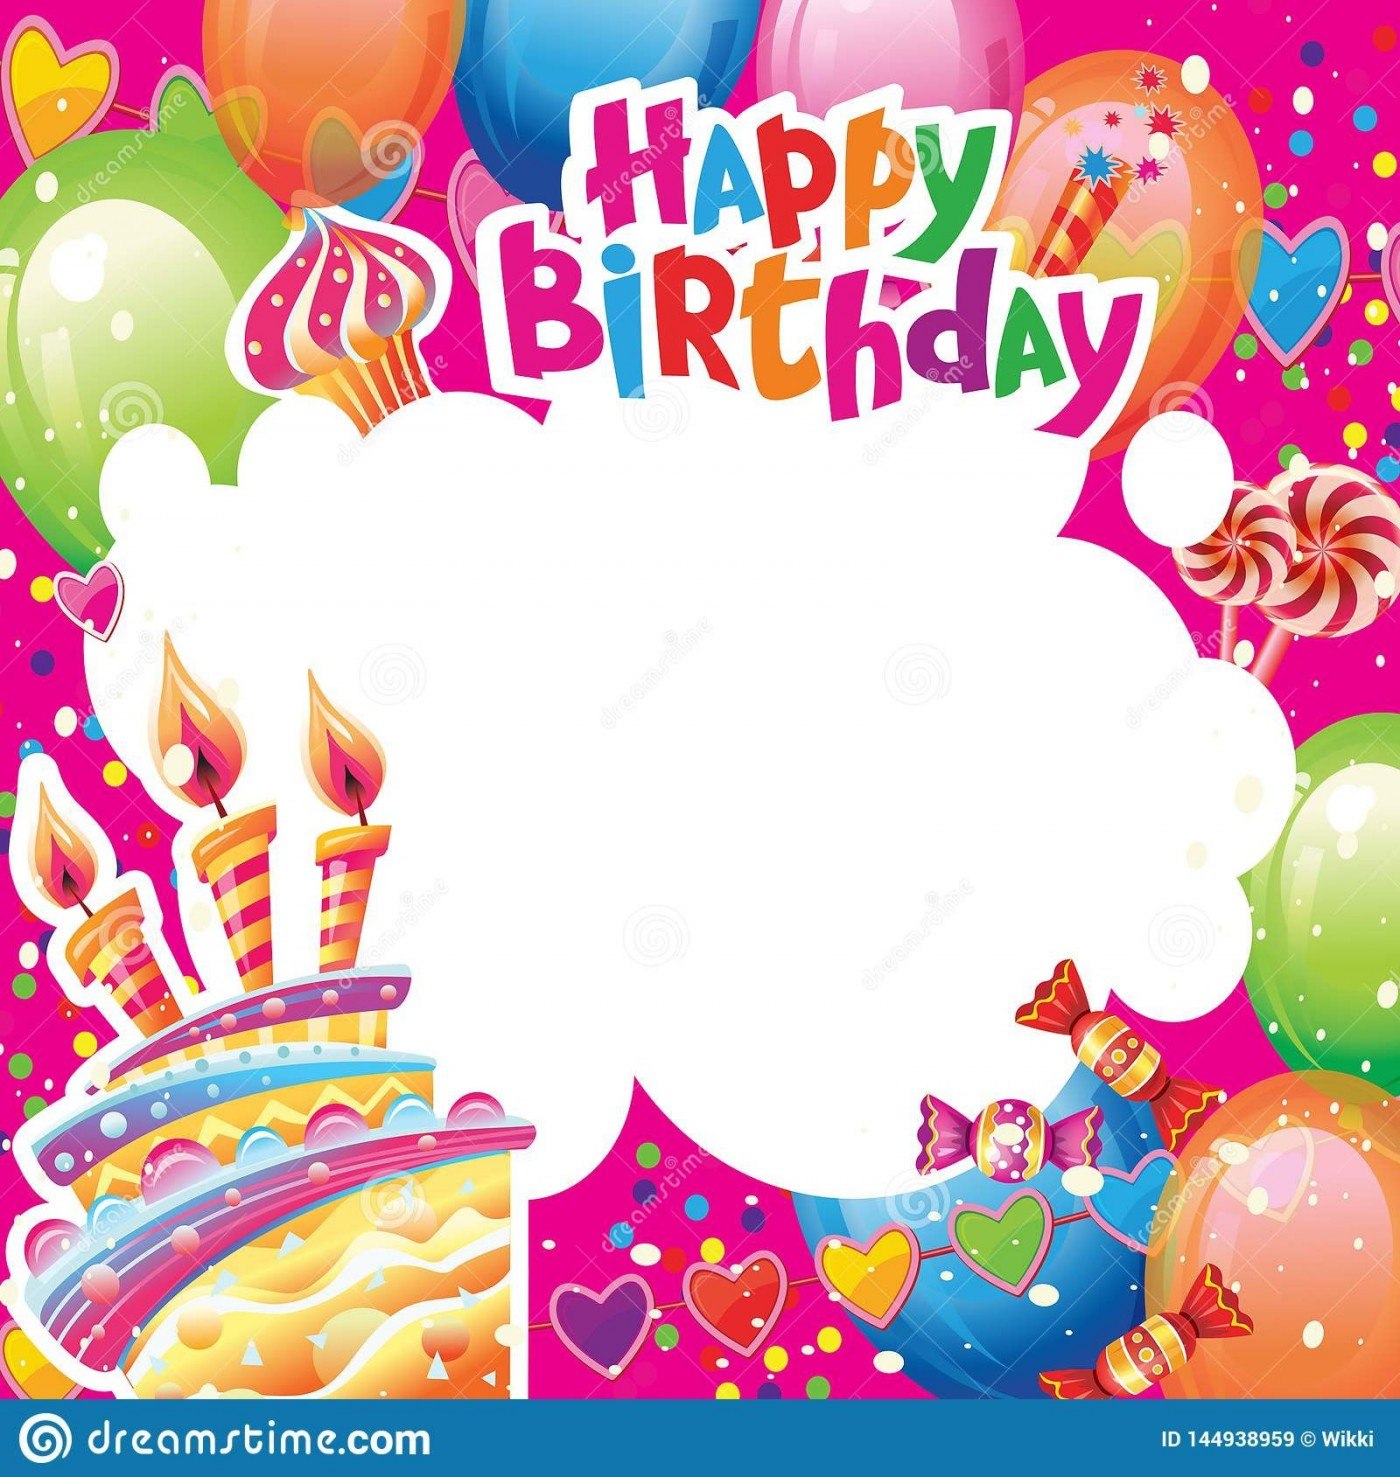 009 Imposing Template For Birthday Card Highest Clarity  Microsoft Word Design Happy1400